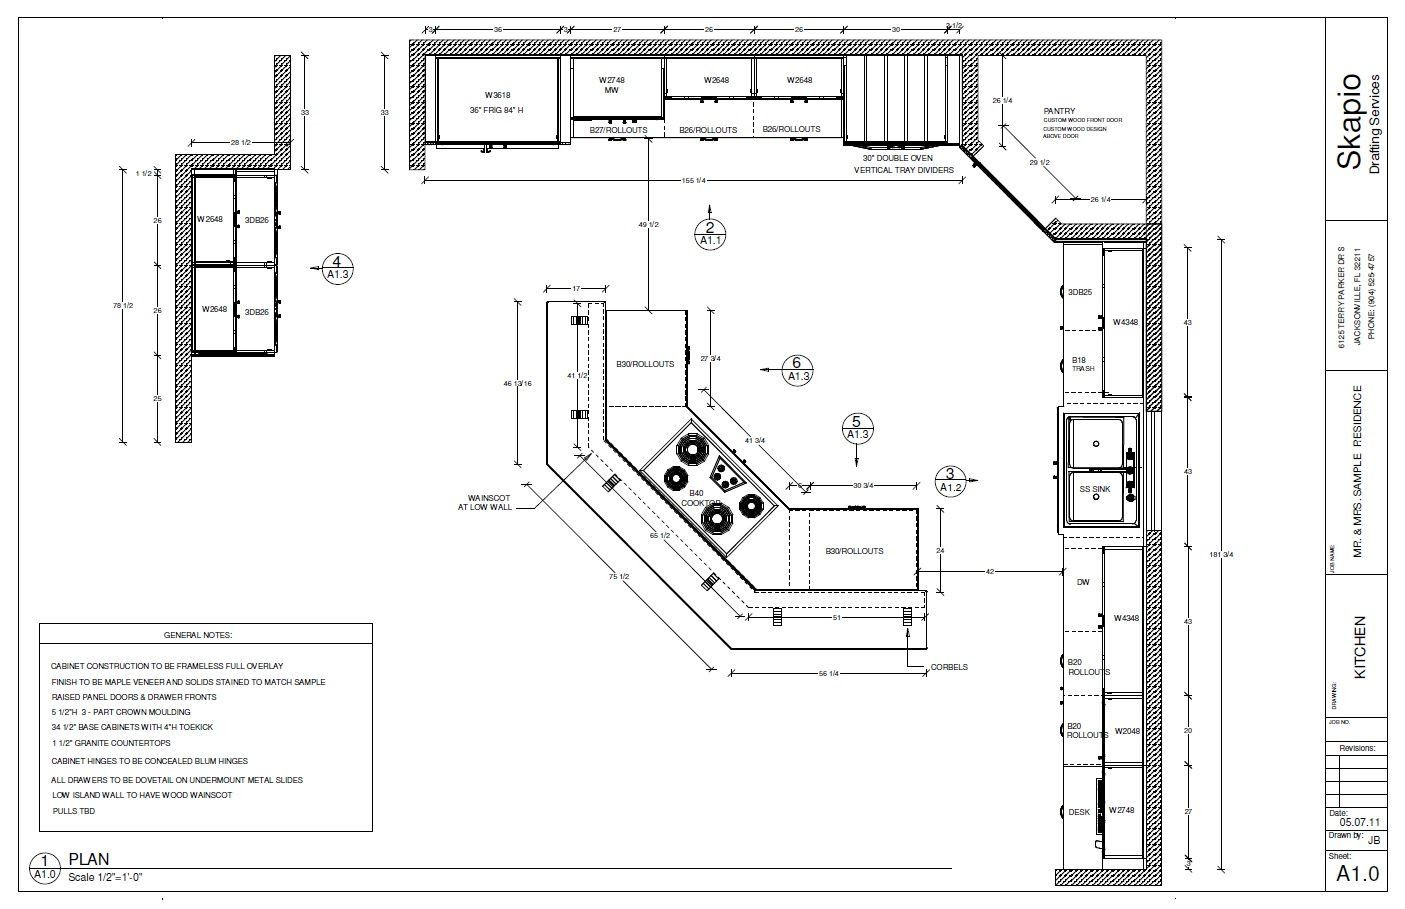 16 X 16 Kitchen Layout Sample Kitchen Floor Plan Shop Drawings